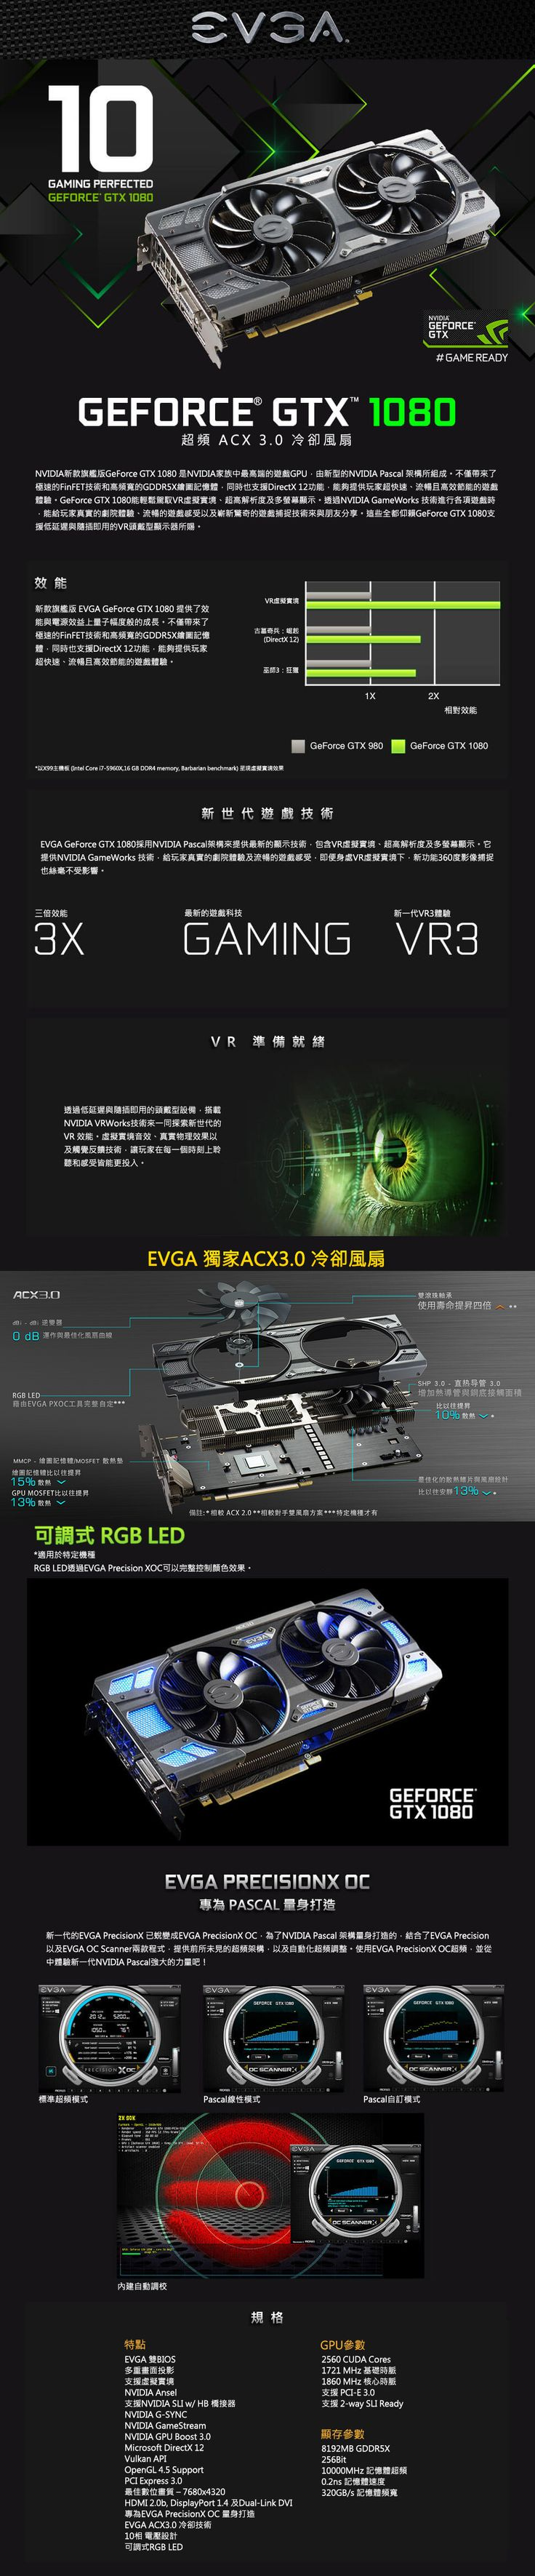 EVGA - Products - EVGA GeForce GTX 1080 FTW GAMING ACX 3.0 - 08G-P4-6286-KR